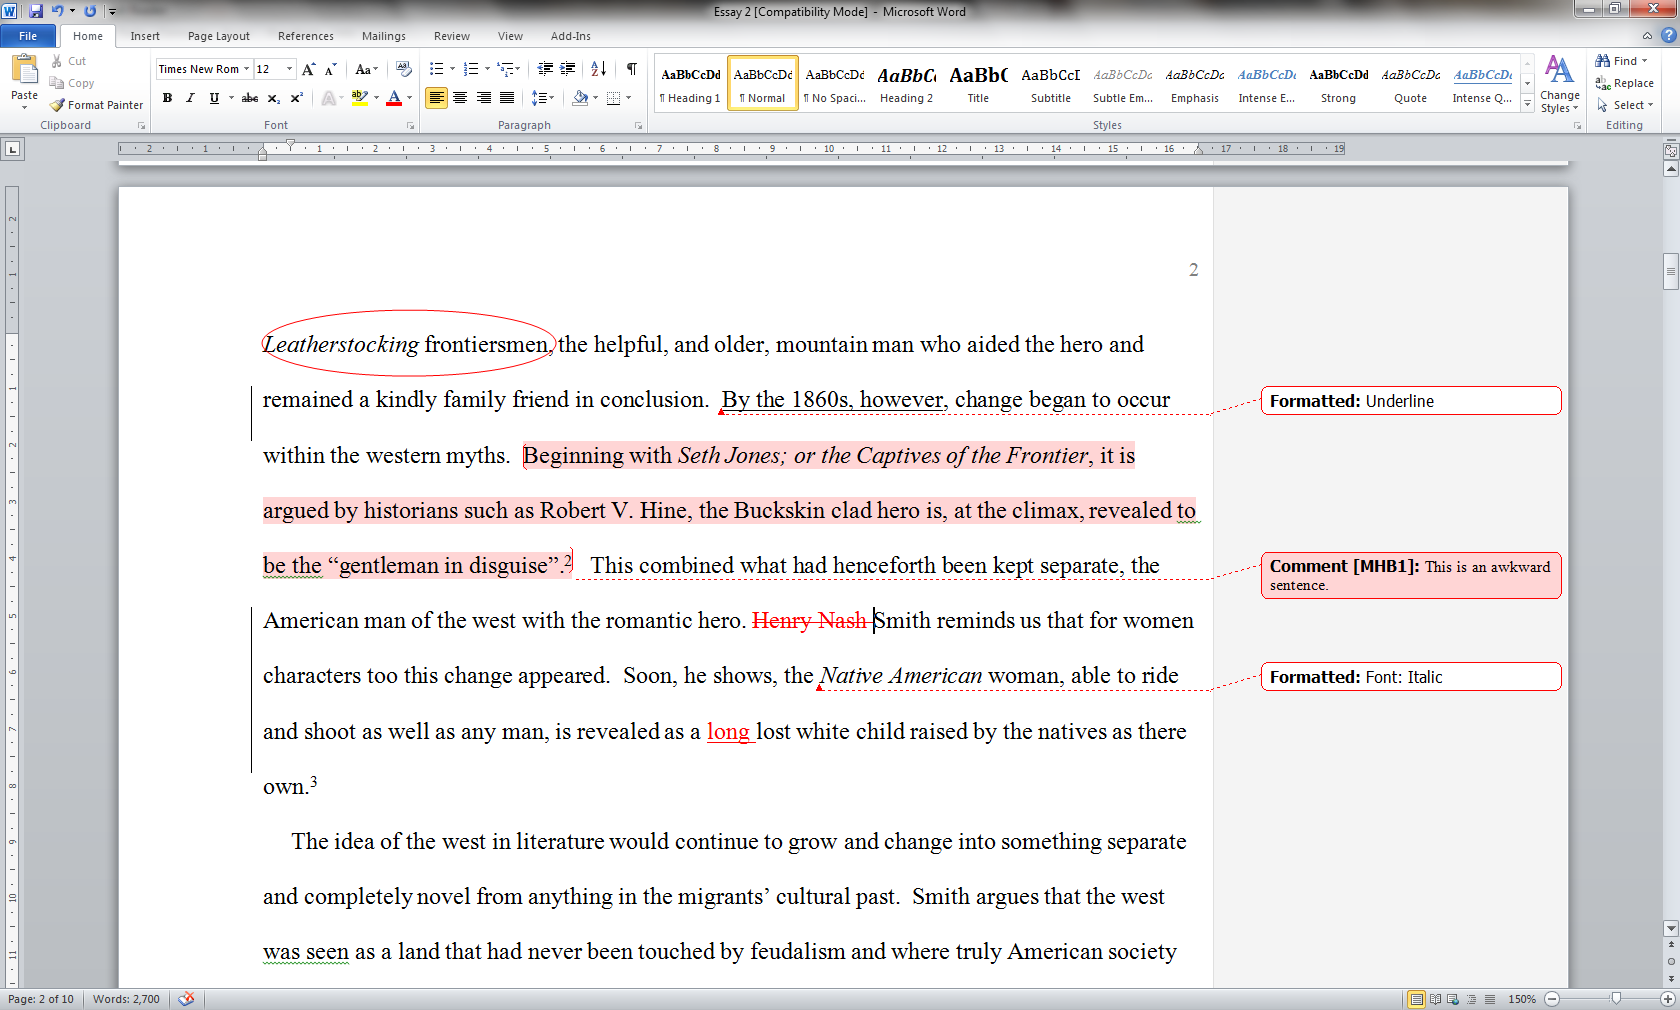 003 Essay Example Wordedit How Tonotate Wondrous To Annotate An A Movie In Critical Full